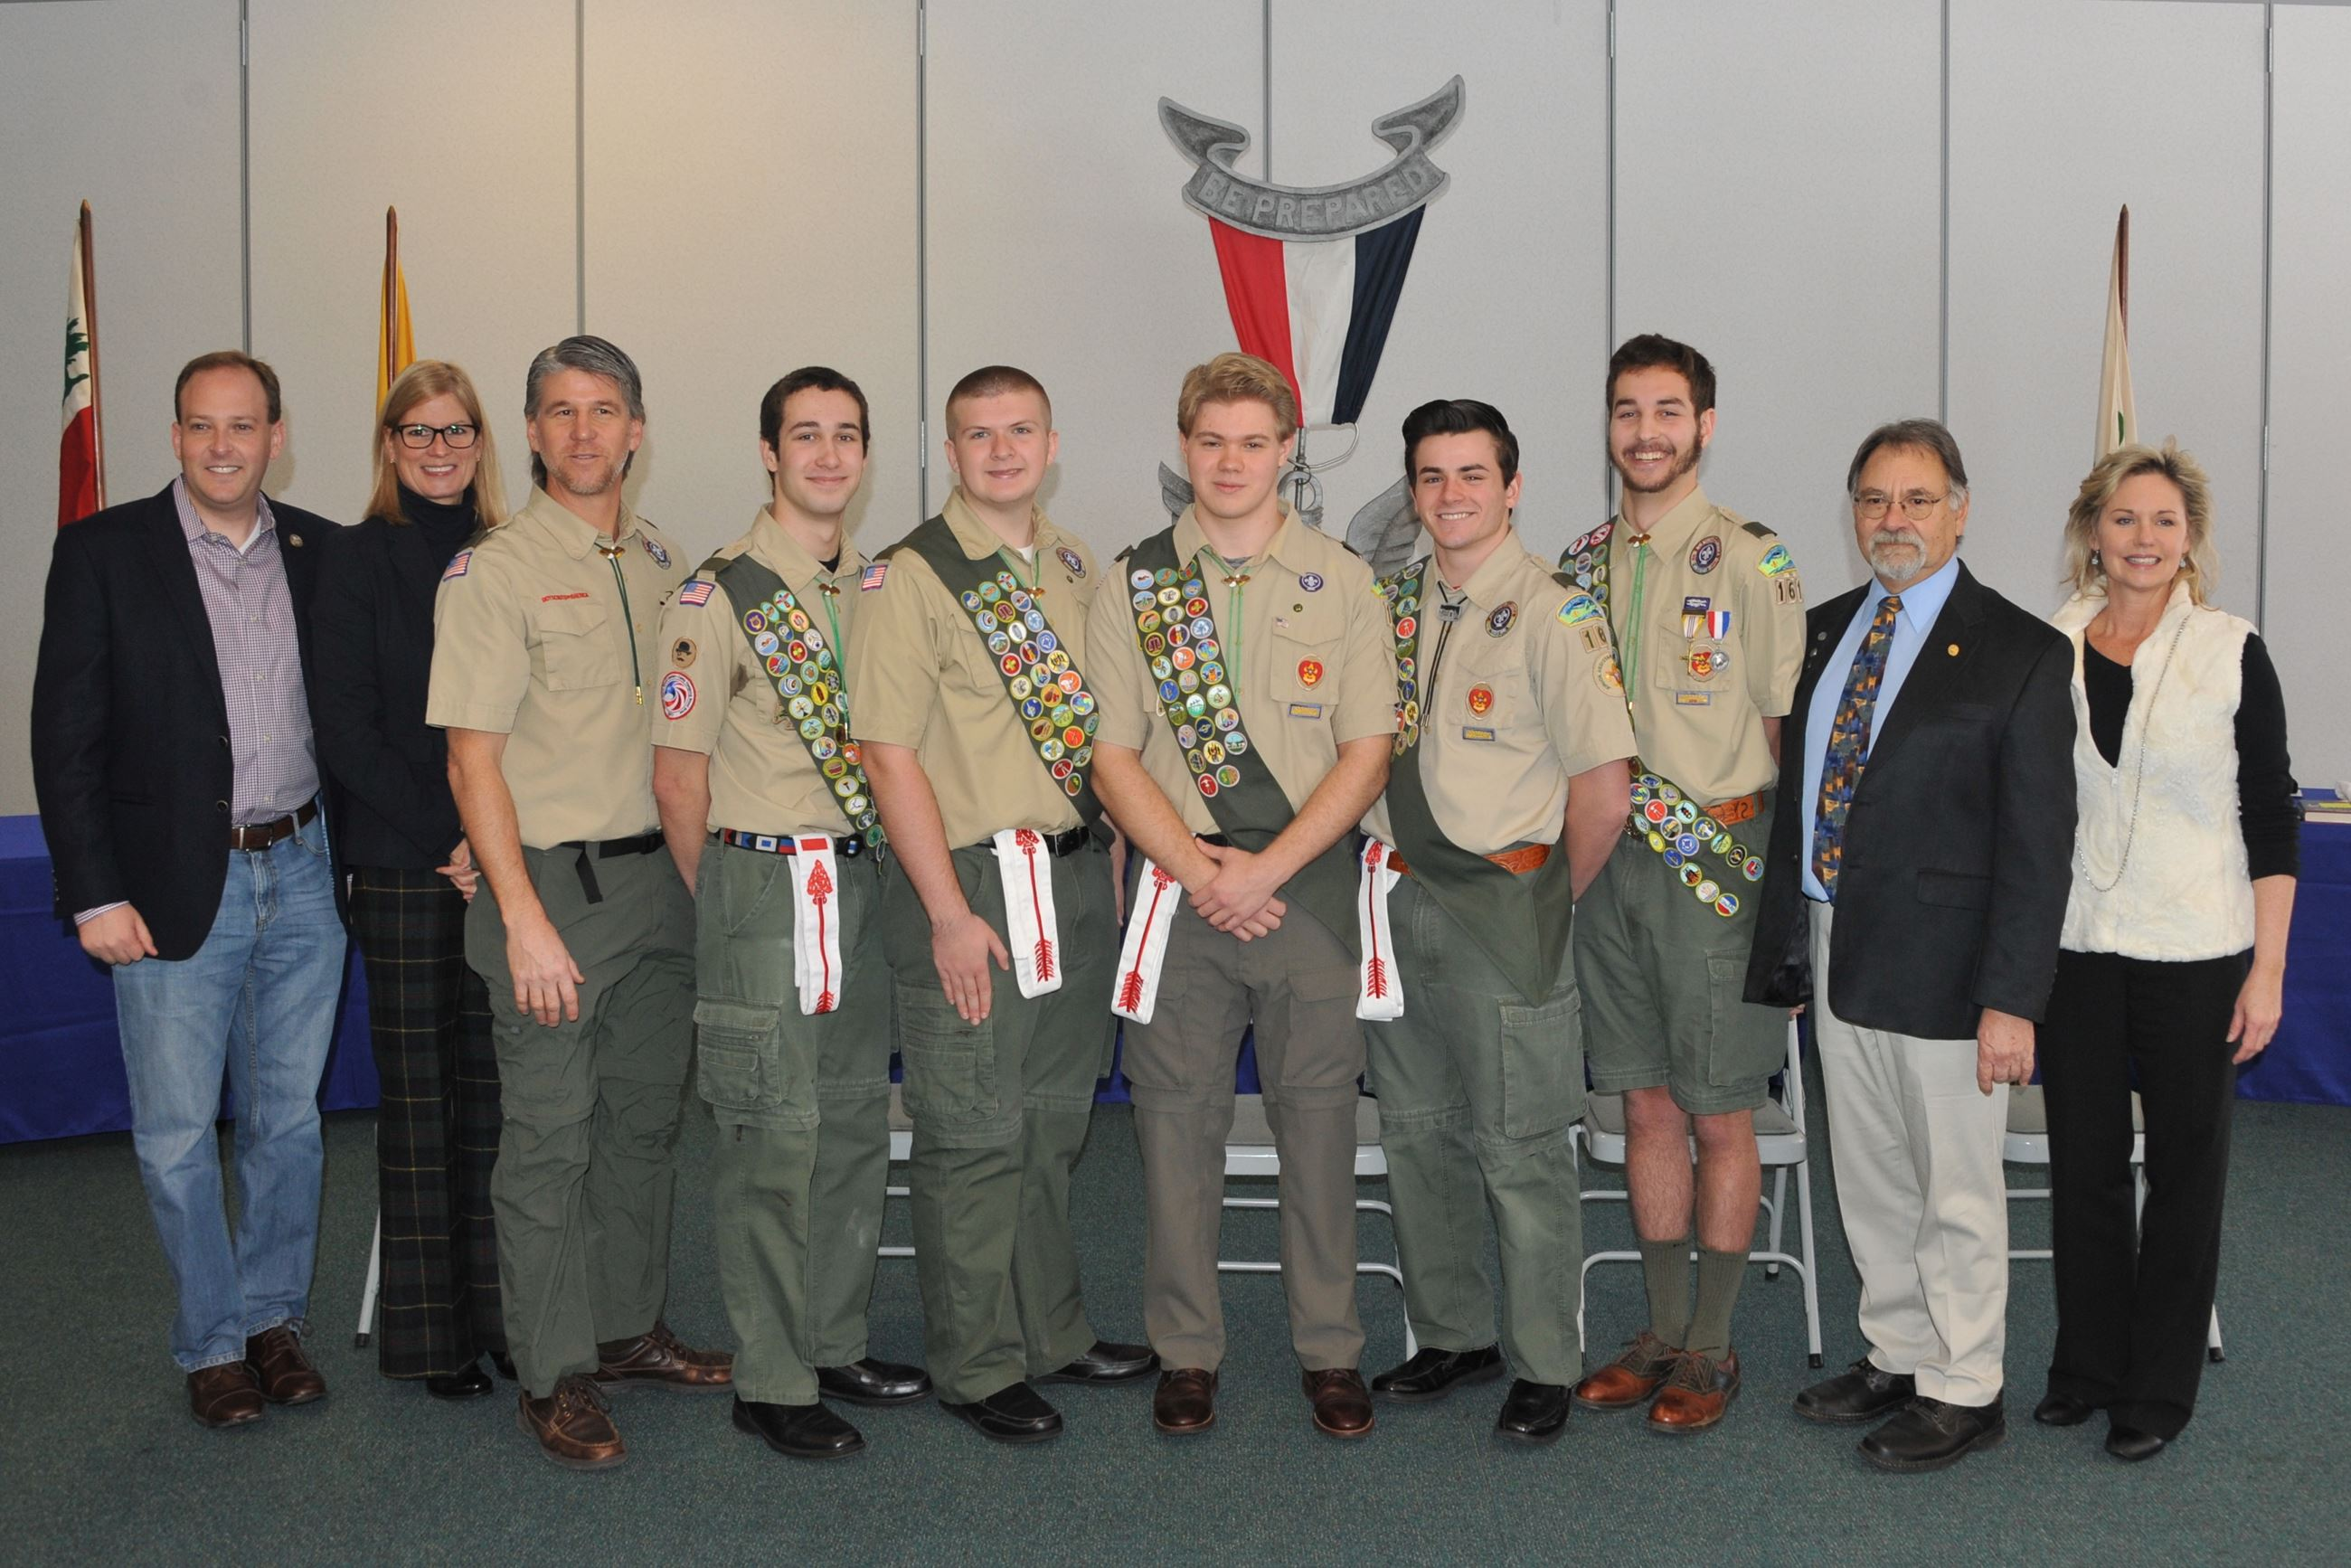 Legislator Anker and Elected Officials with Eagle Scouts from Troop 161